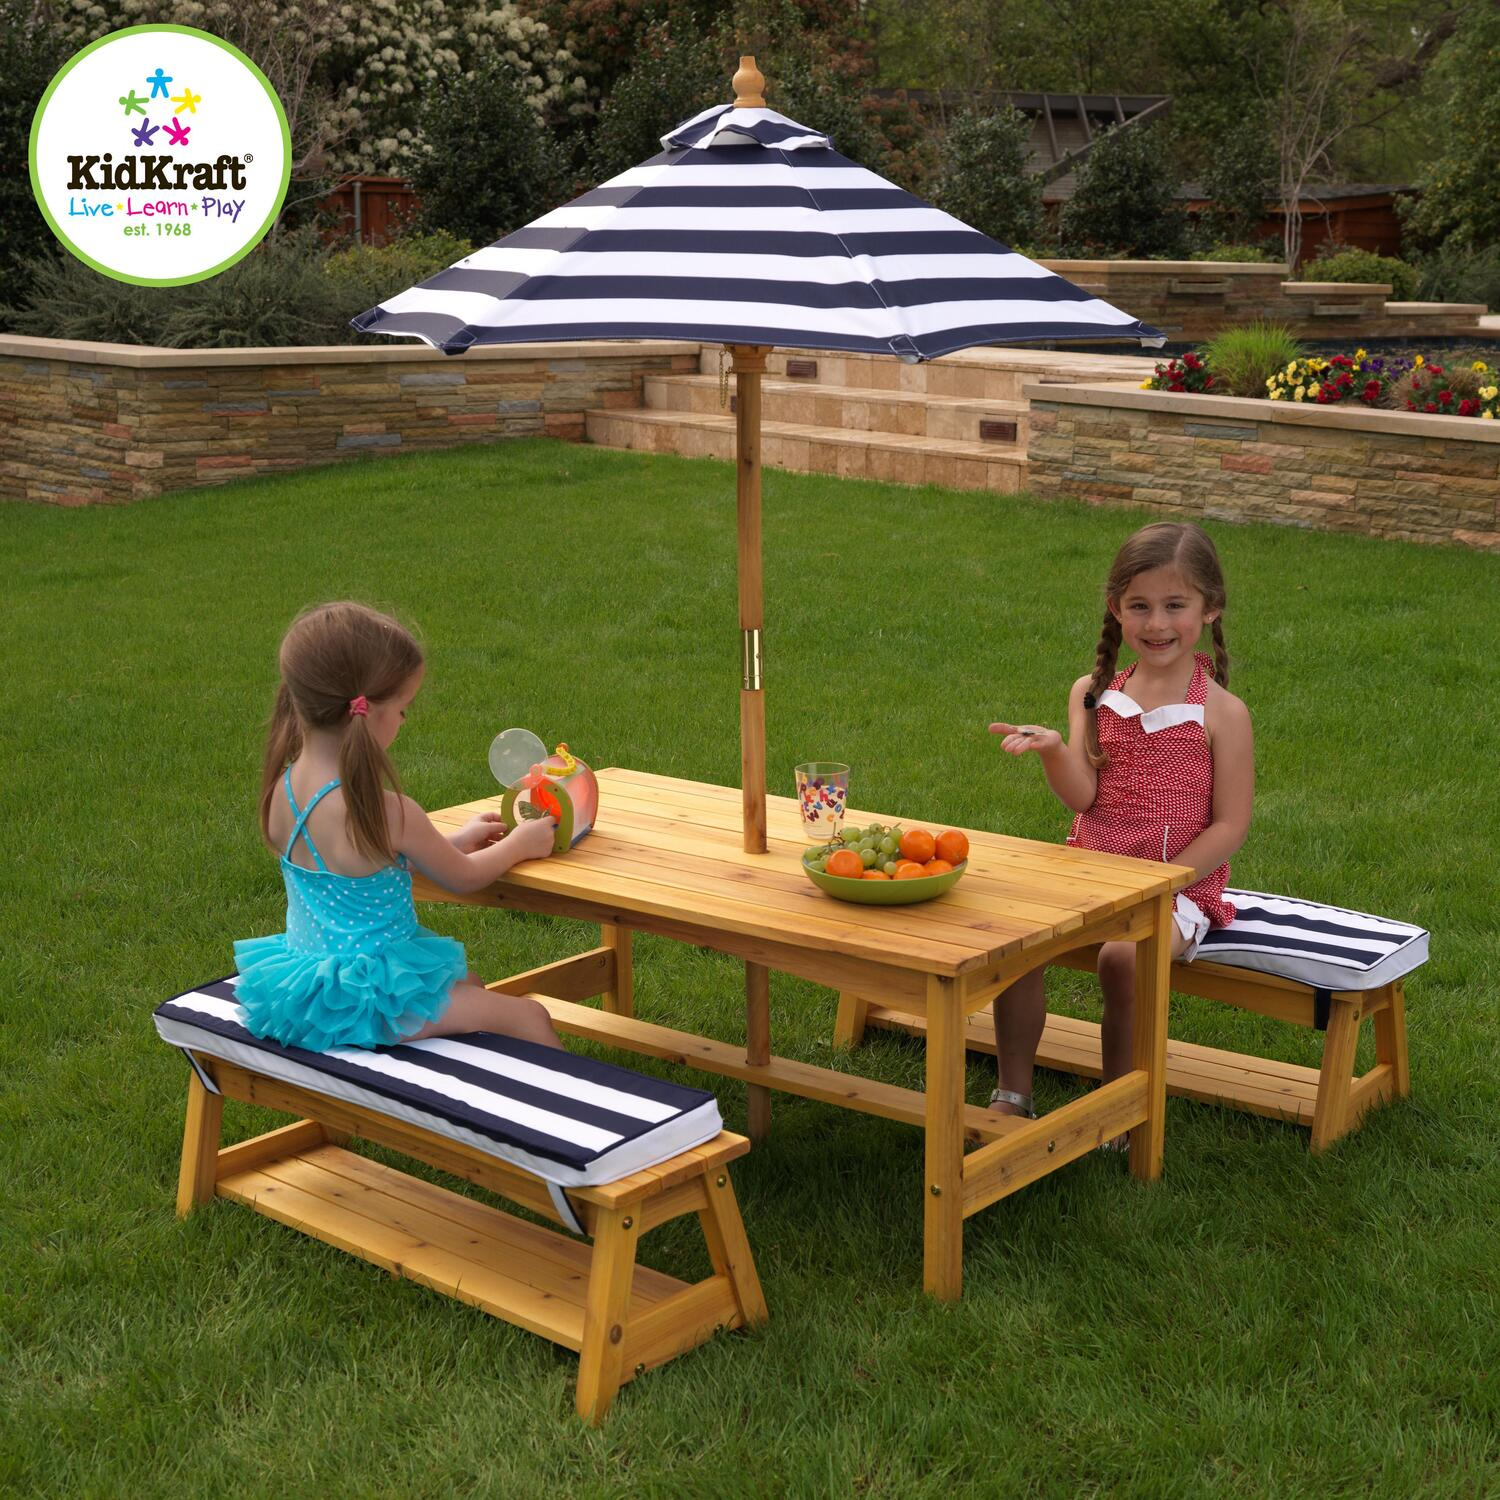 Kidkraft Outdoor Table Bench Set With Cushions An Umbrella By Oj Commerce 106d